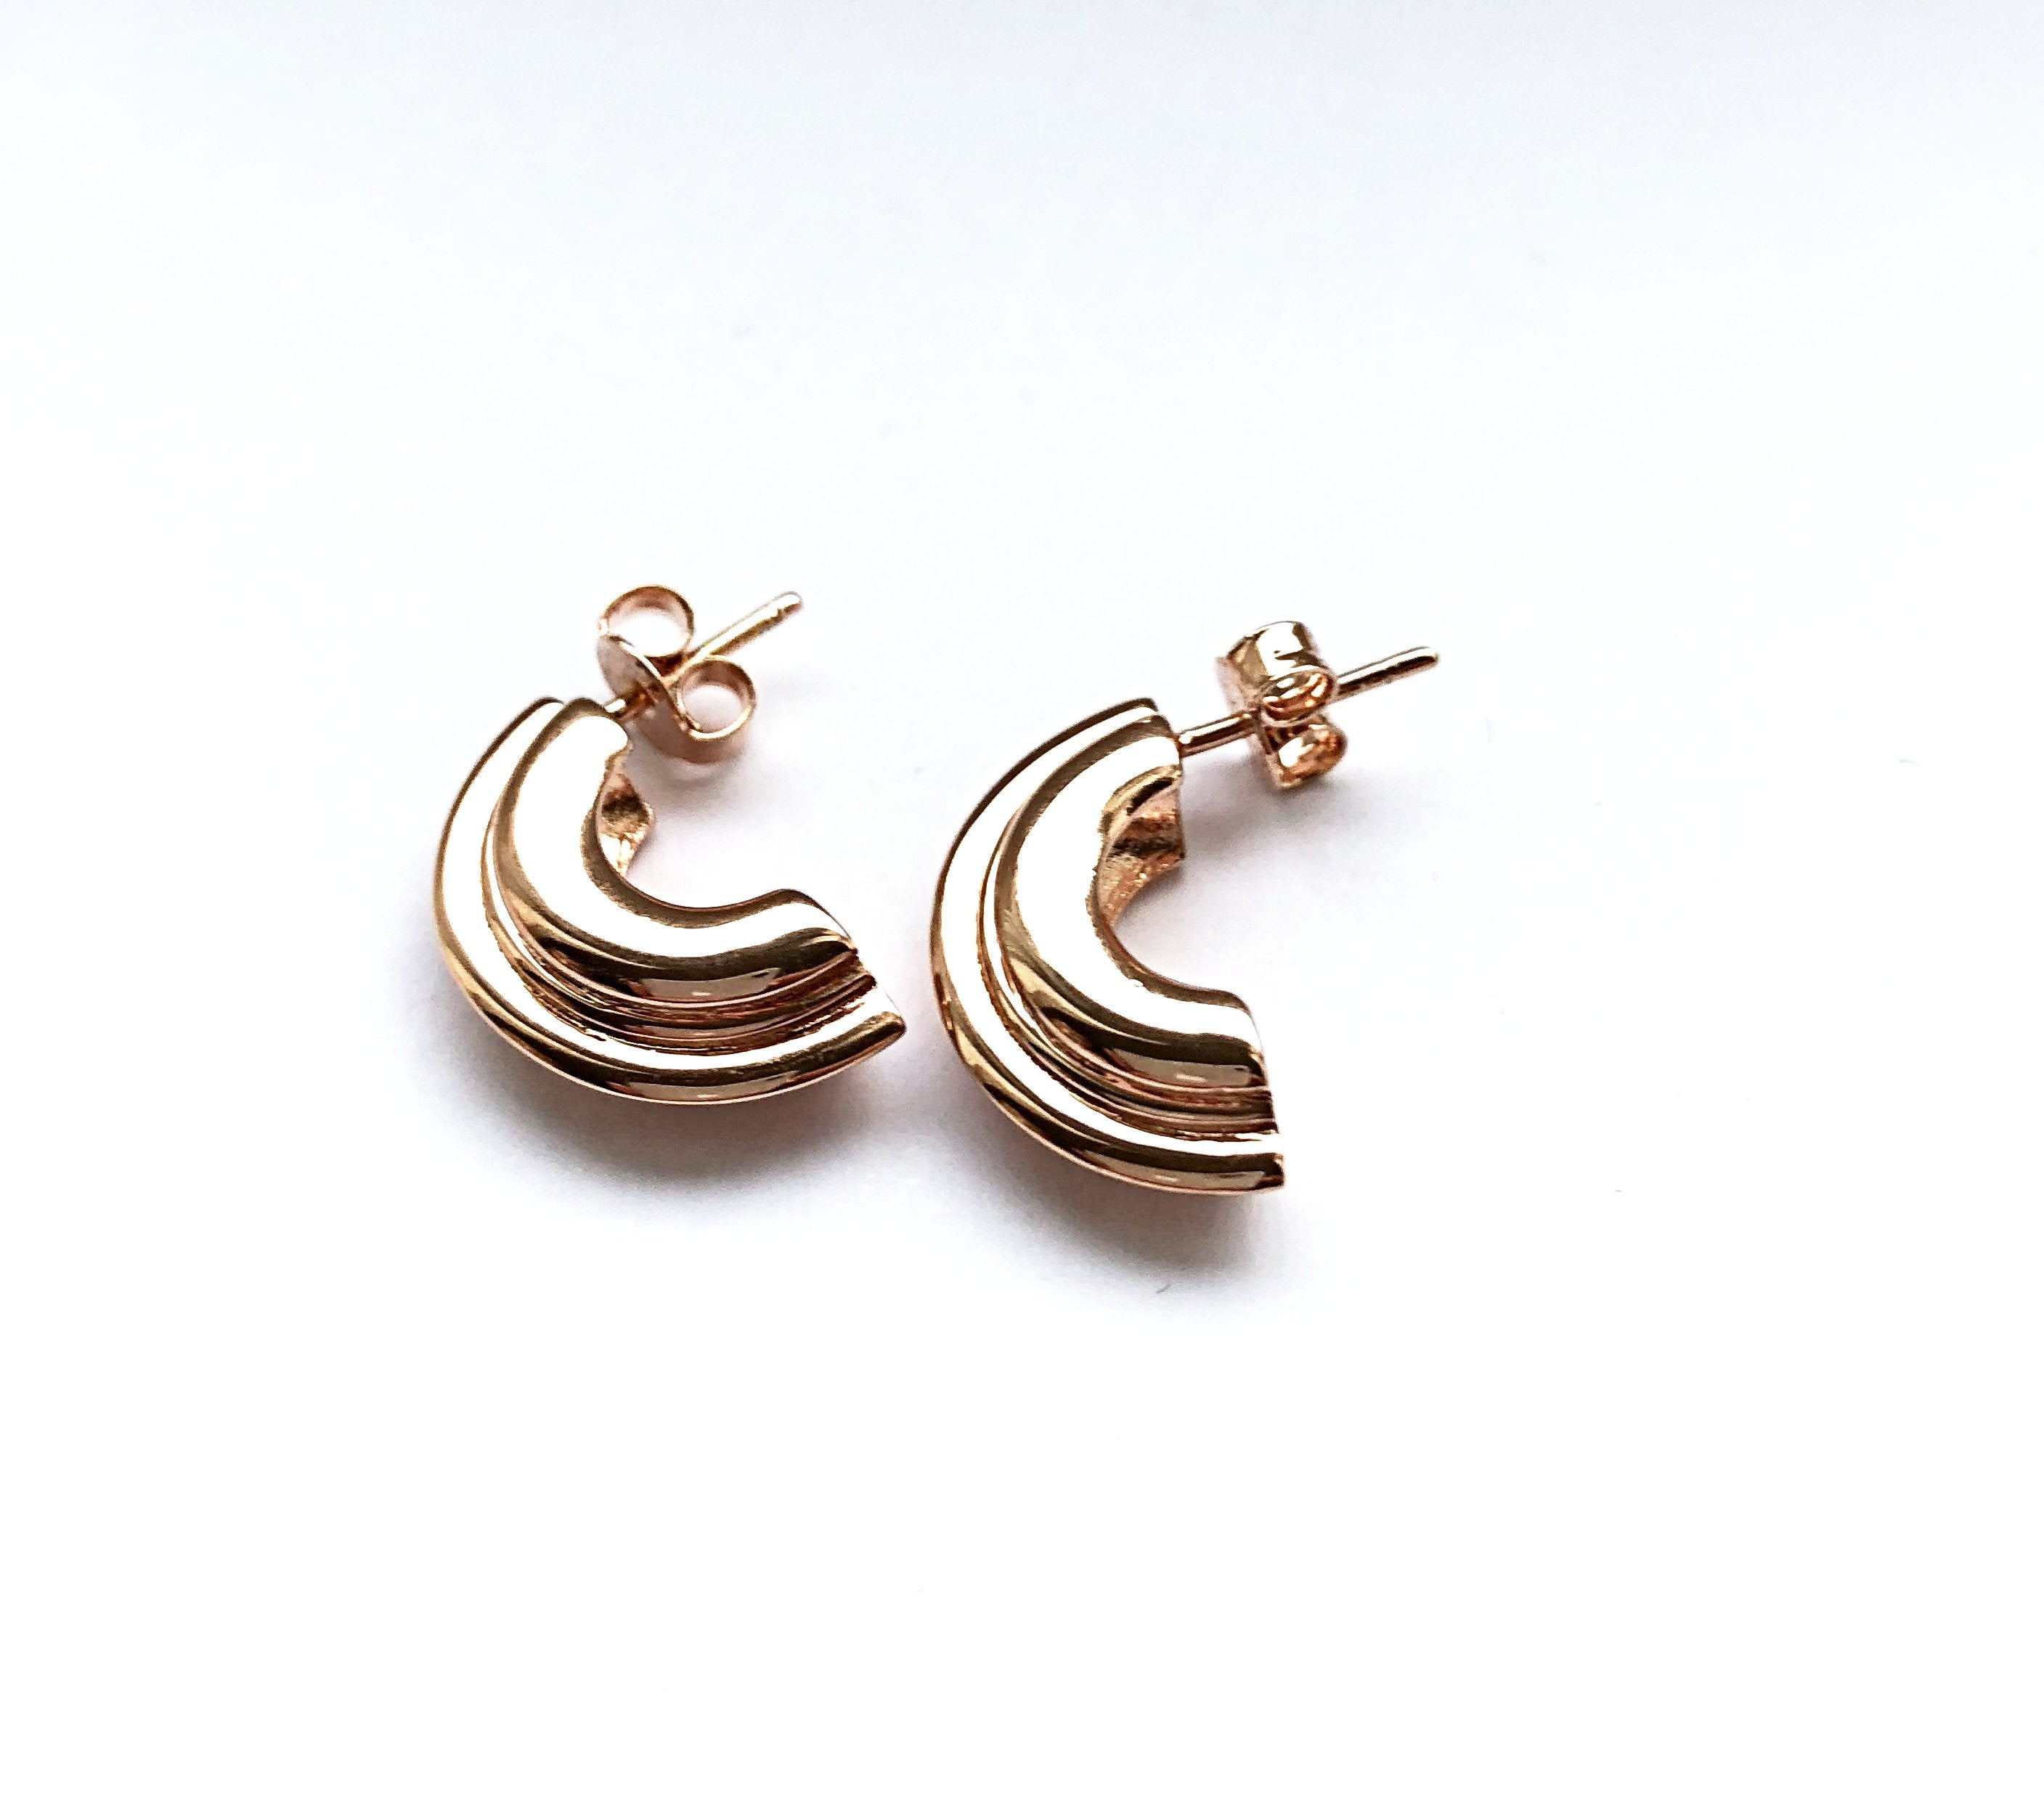 PNEUS Small Half Hoop Earrings